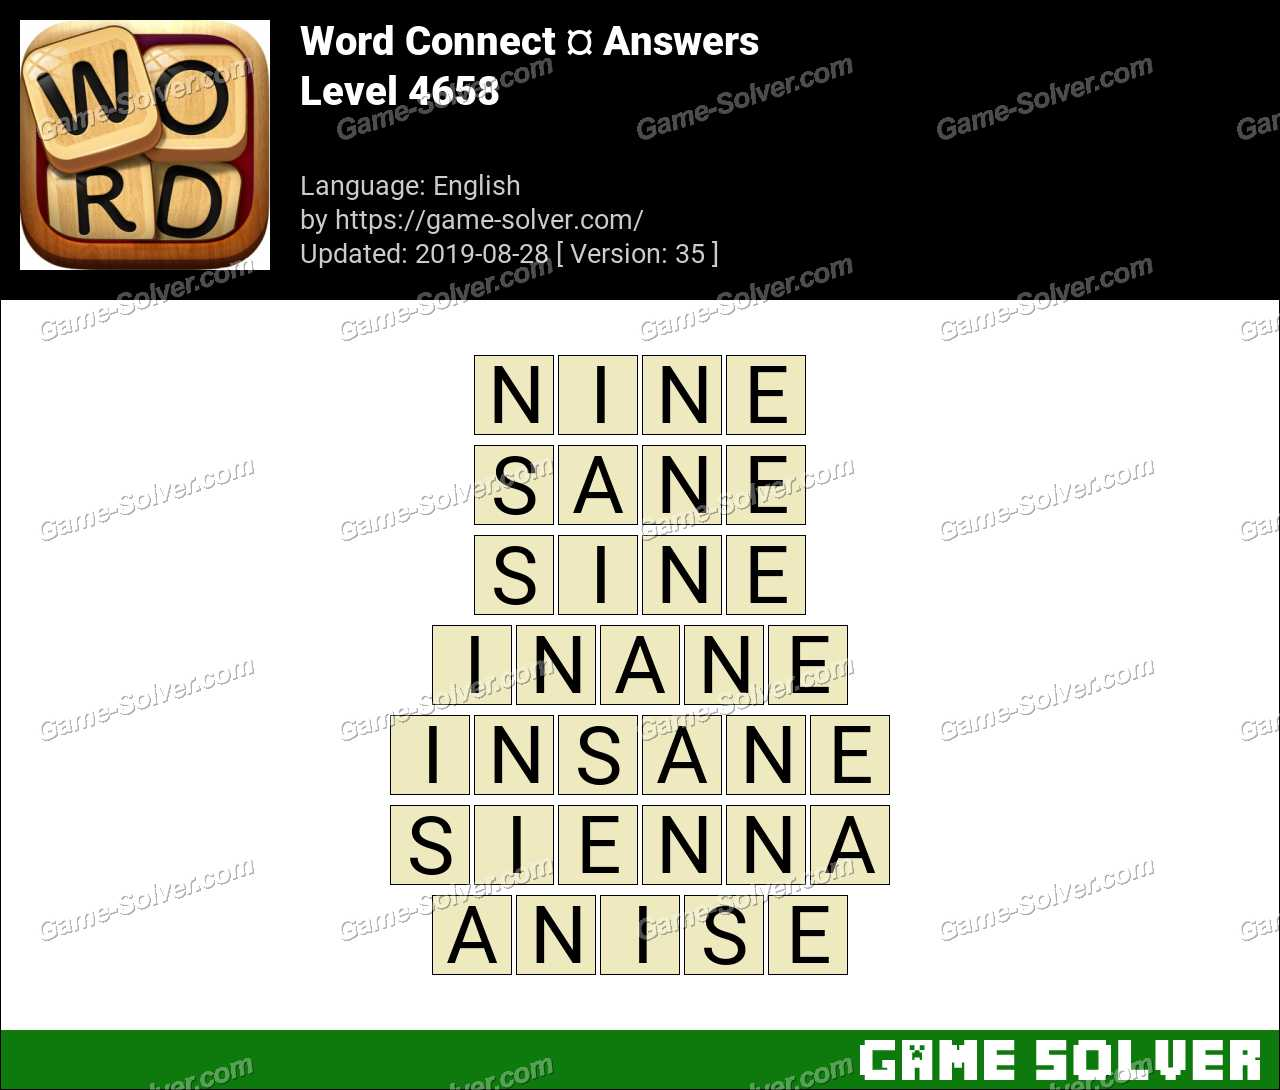 Word Connect Level 4658 Answers